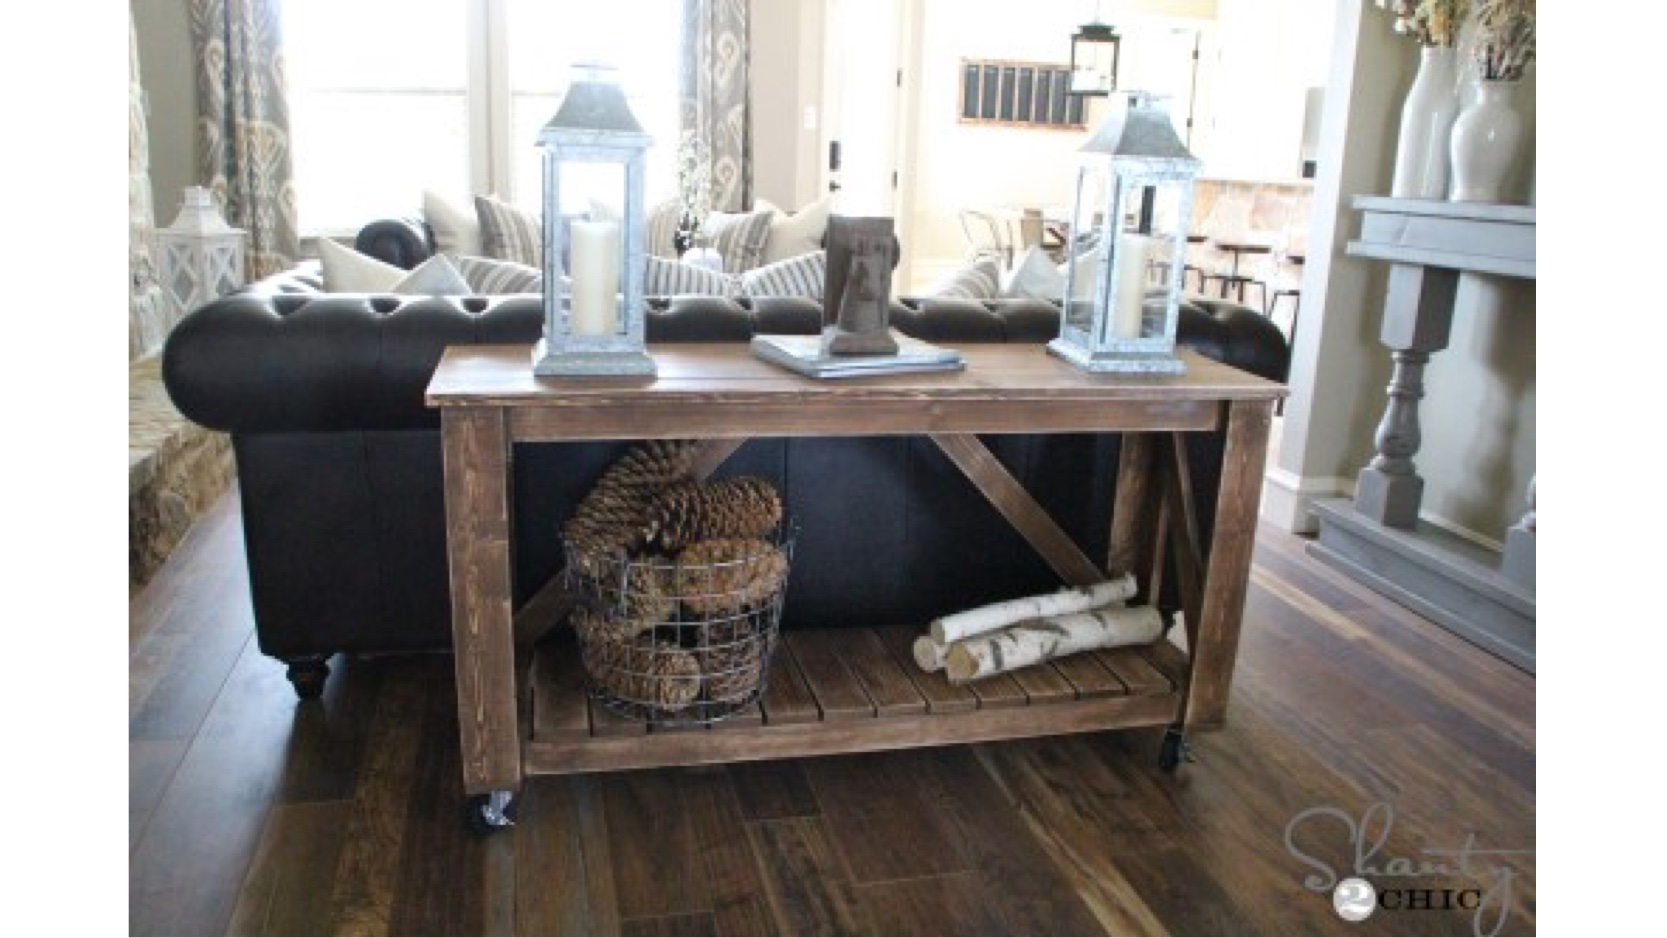 free woodworking plans,console tables,sofa tables,hall tables,furniture,diy,free projects,do it yourself